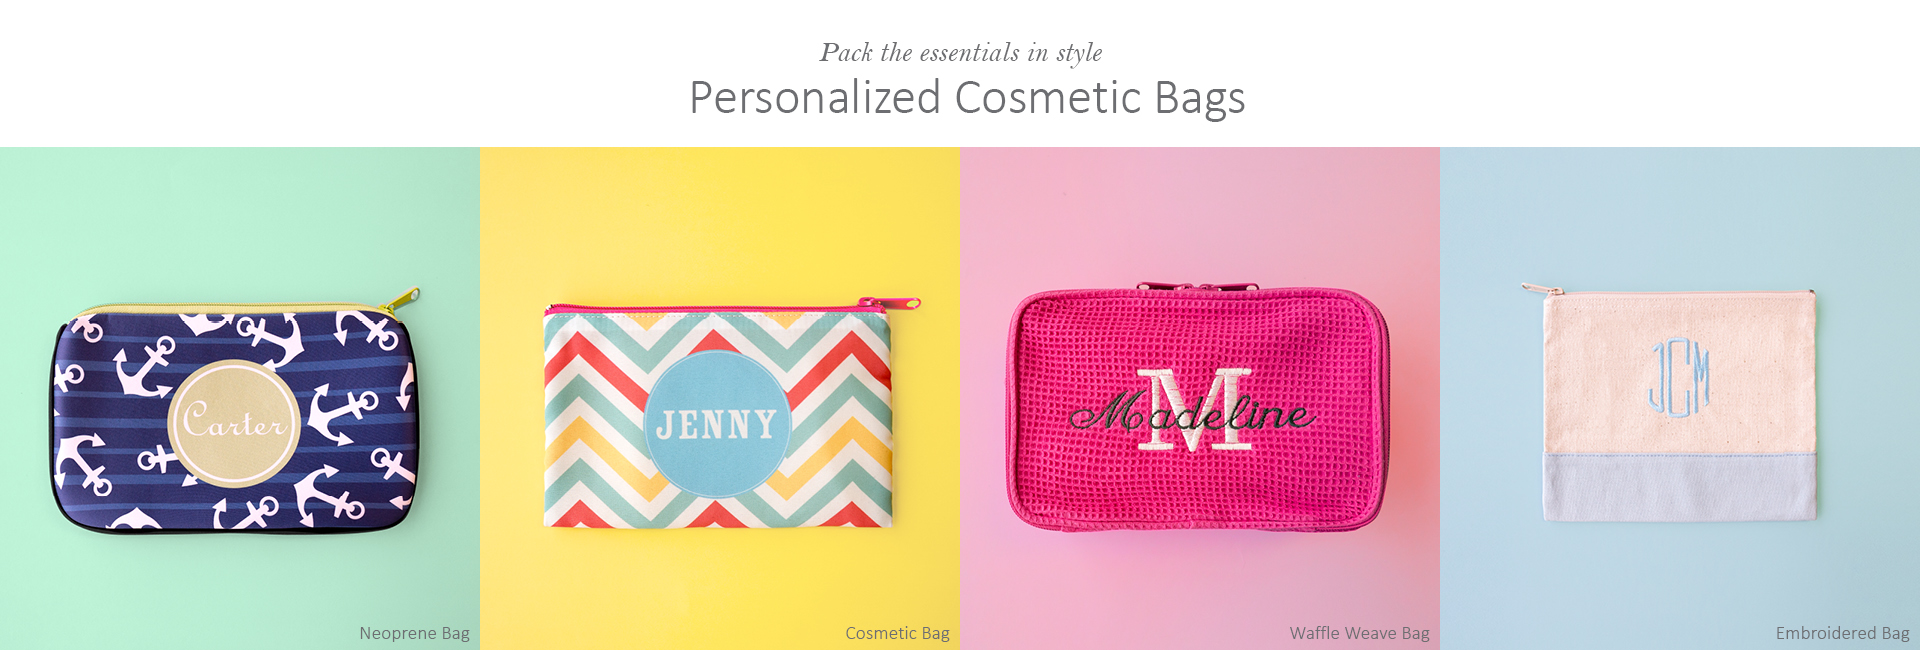 Unleash Your Creativity And Style Store All Beauty Daily Necessities In One Place Save 25 On Our Selection Of Cosmetic Bags Different